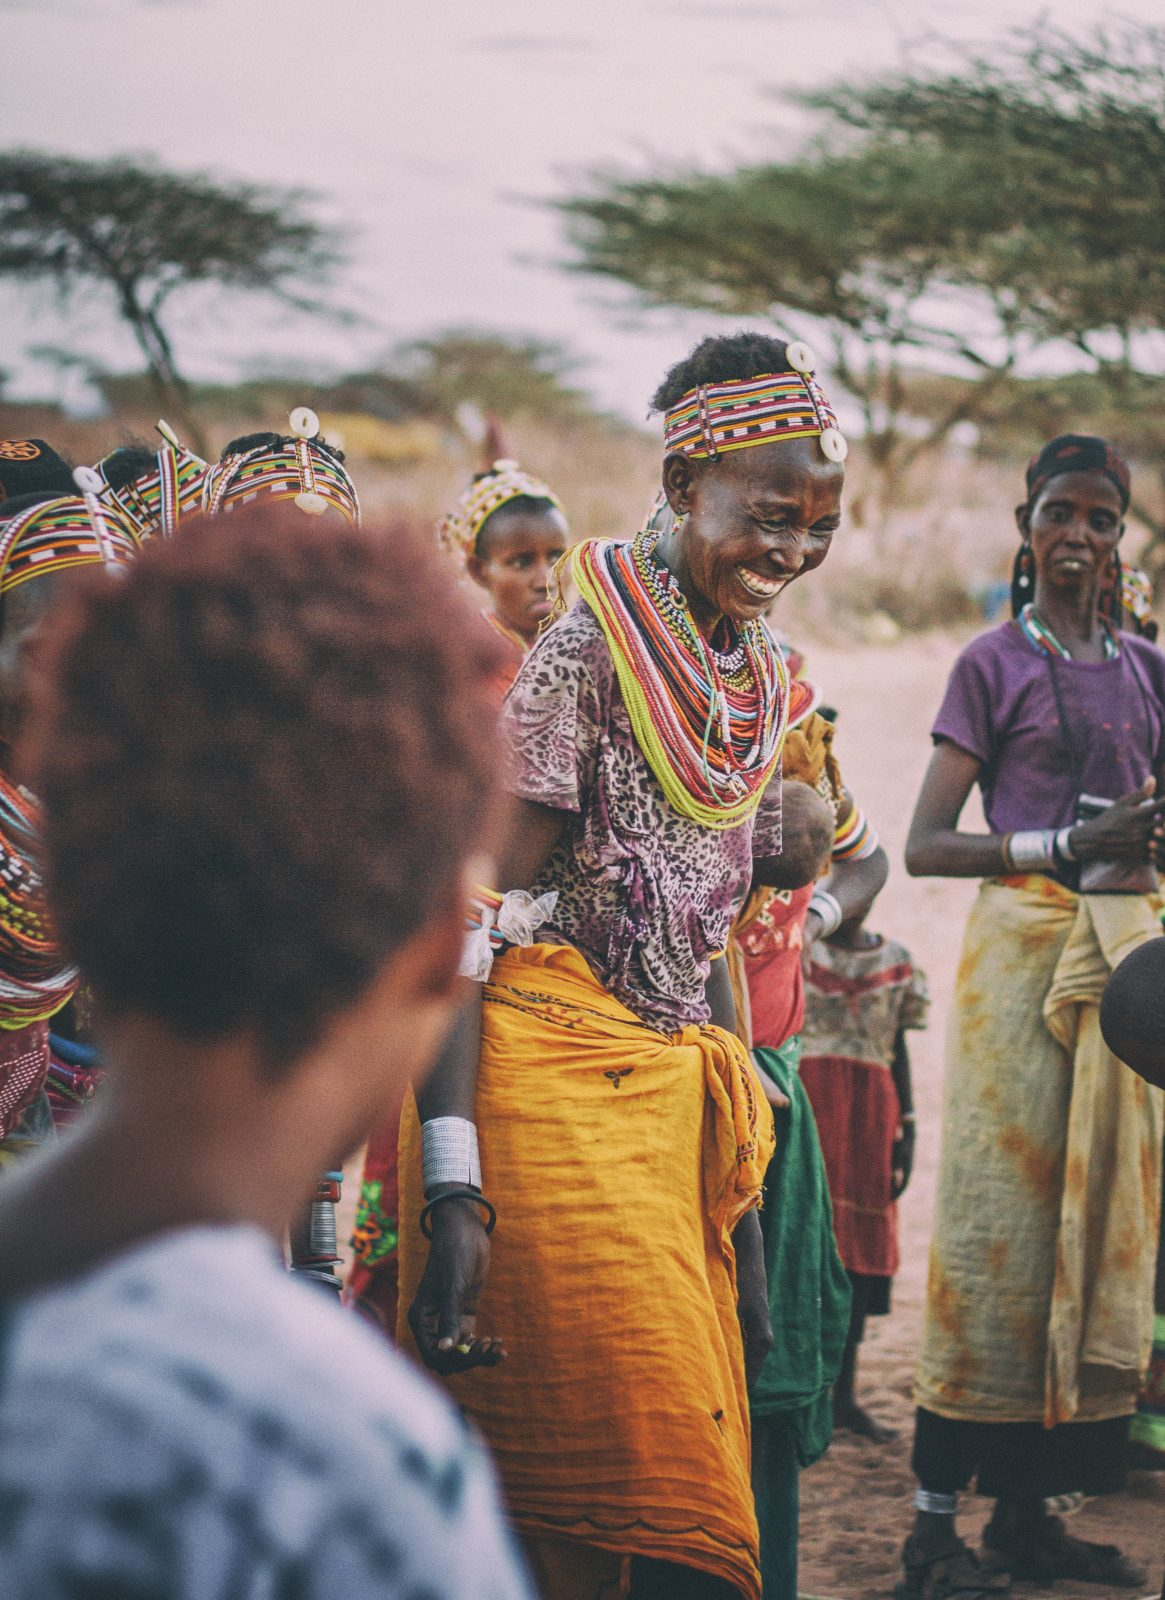 African style and dress